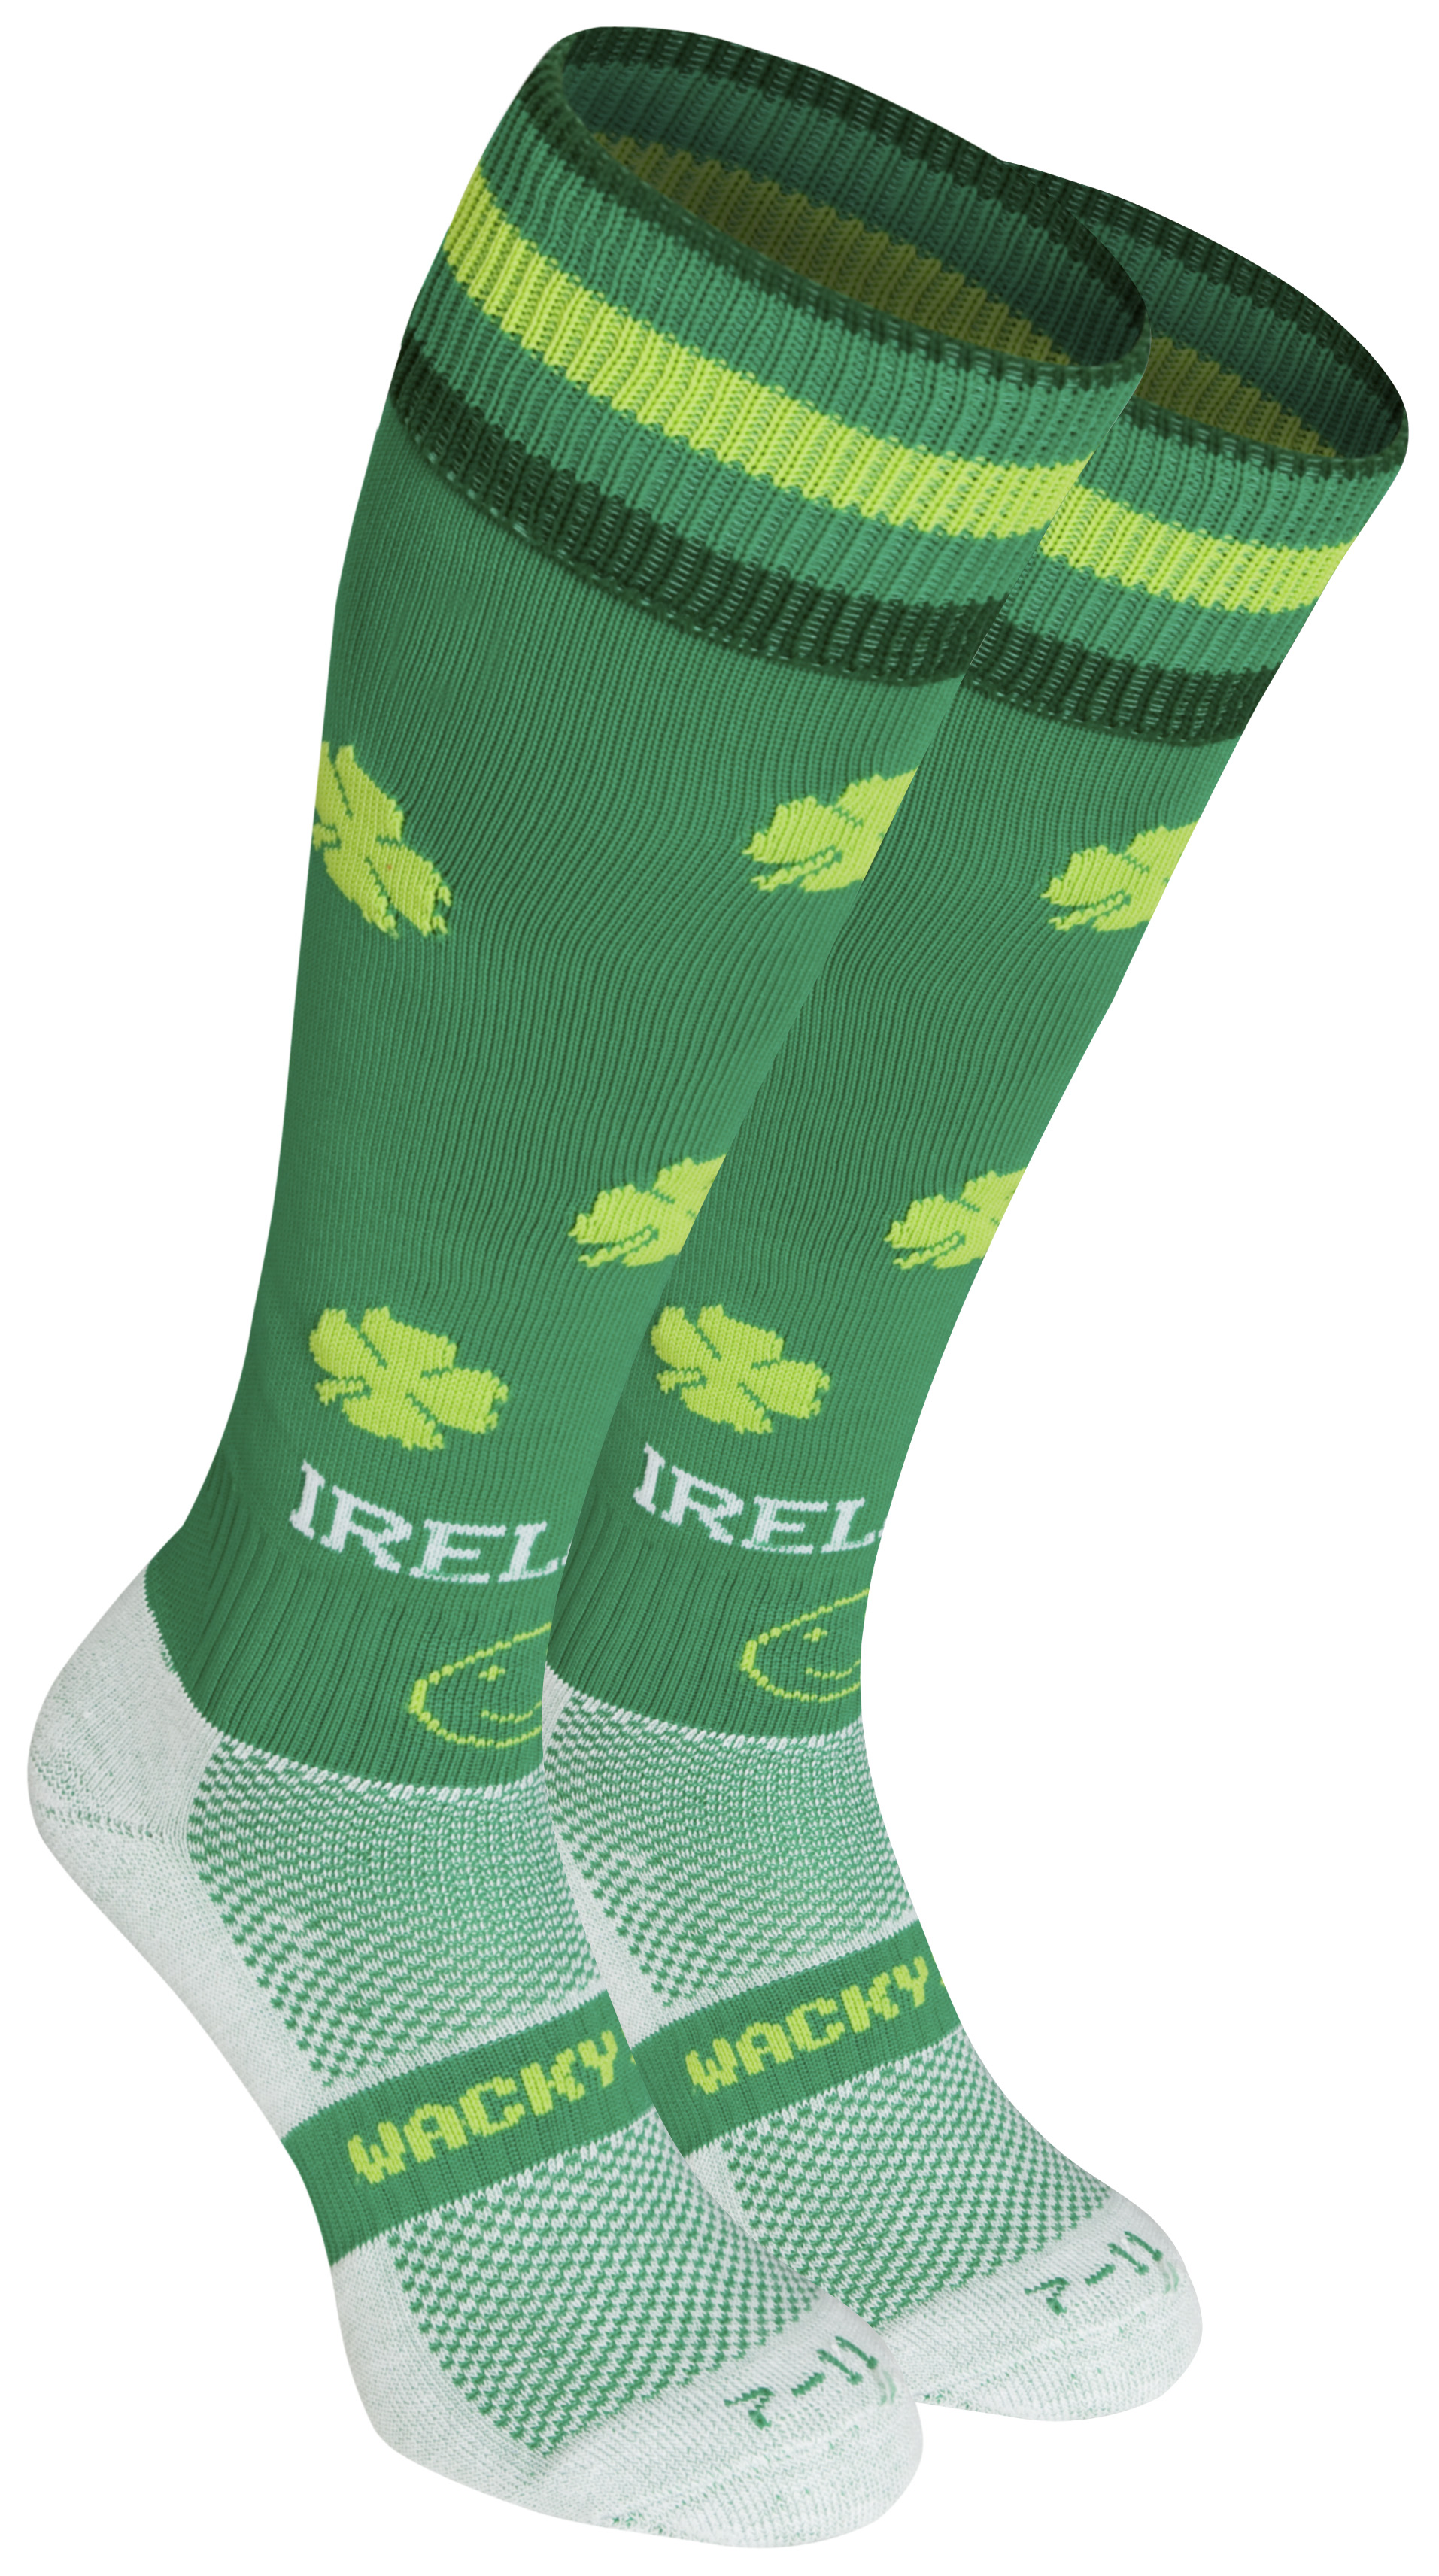 WackySox Ireland Socks - Green - Size 2-6